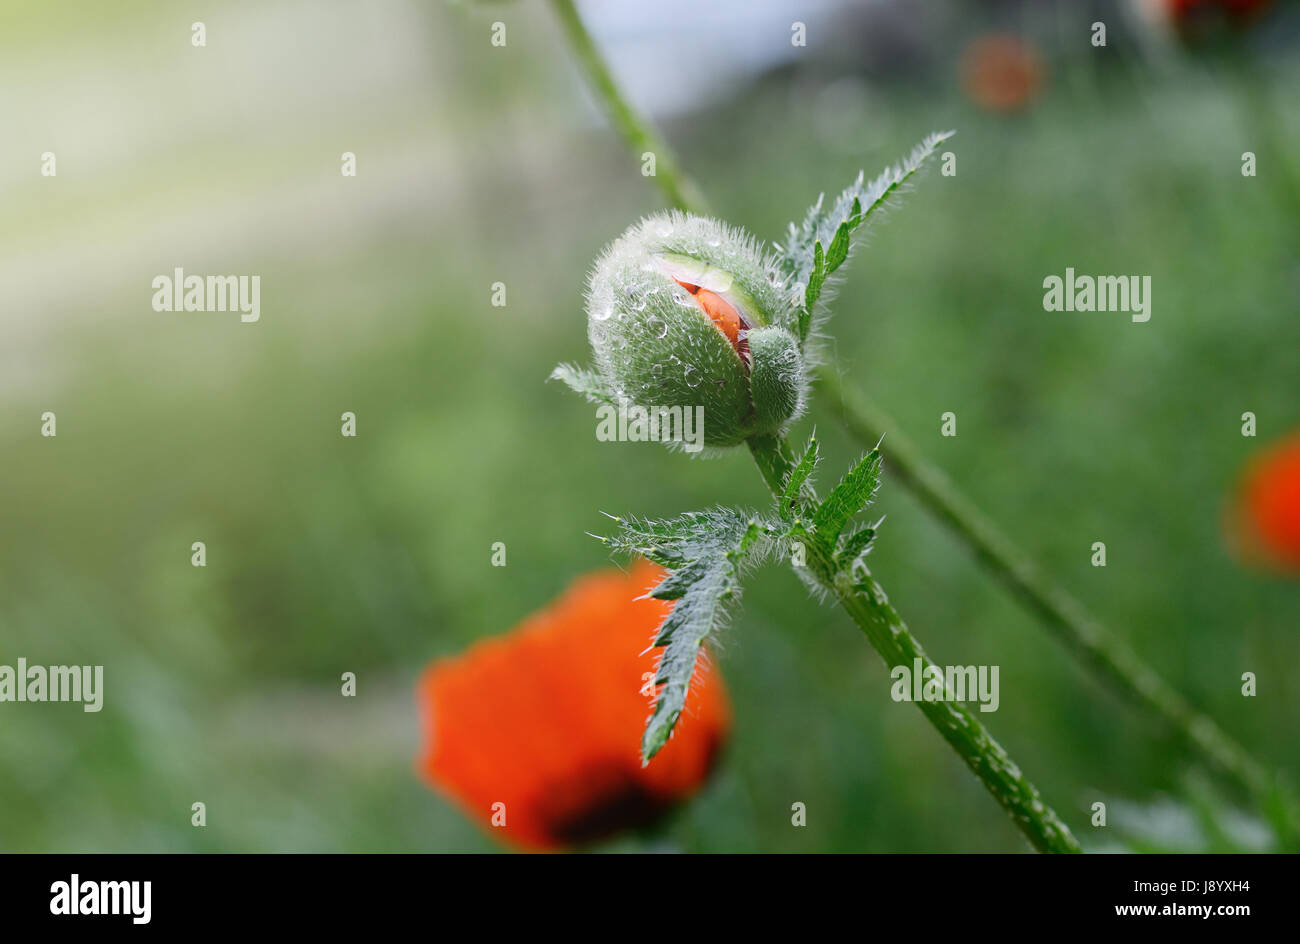 Beautiful red poppy close up photo of spring flower symbol of beautiful red poppy close up photo of spring flower symbol of commemorate military personnel who have died in war also simbol of sleeping and death mightylinksfo